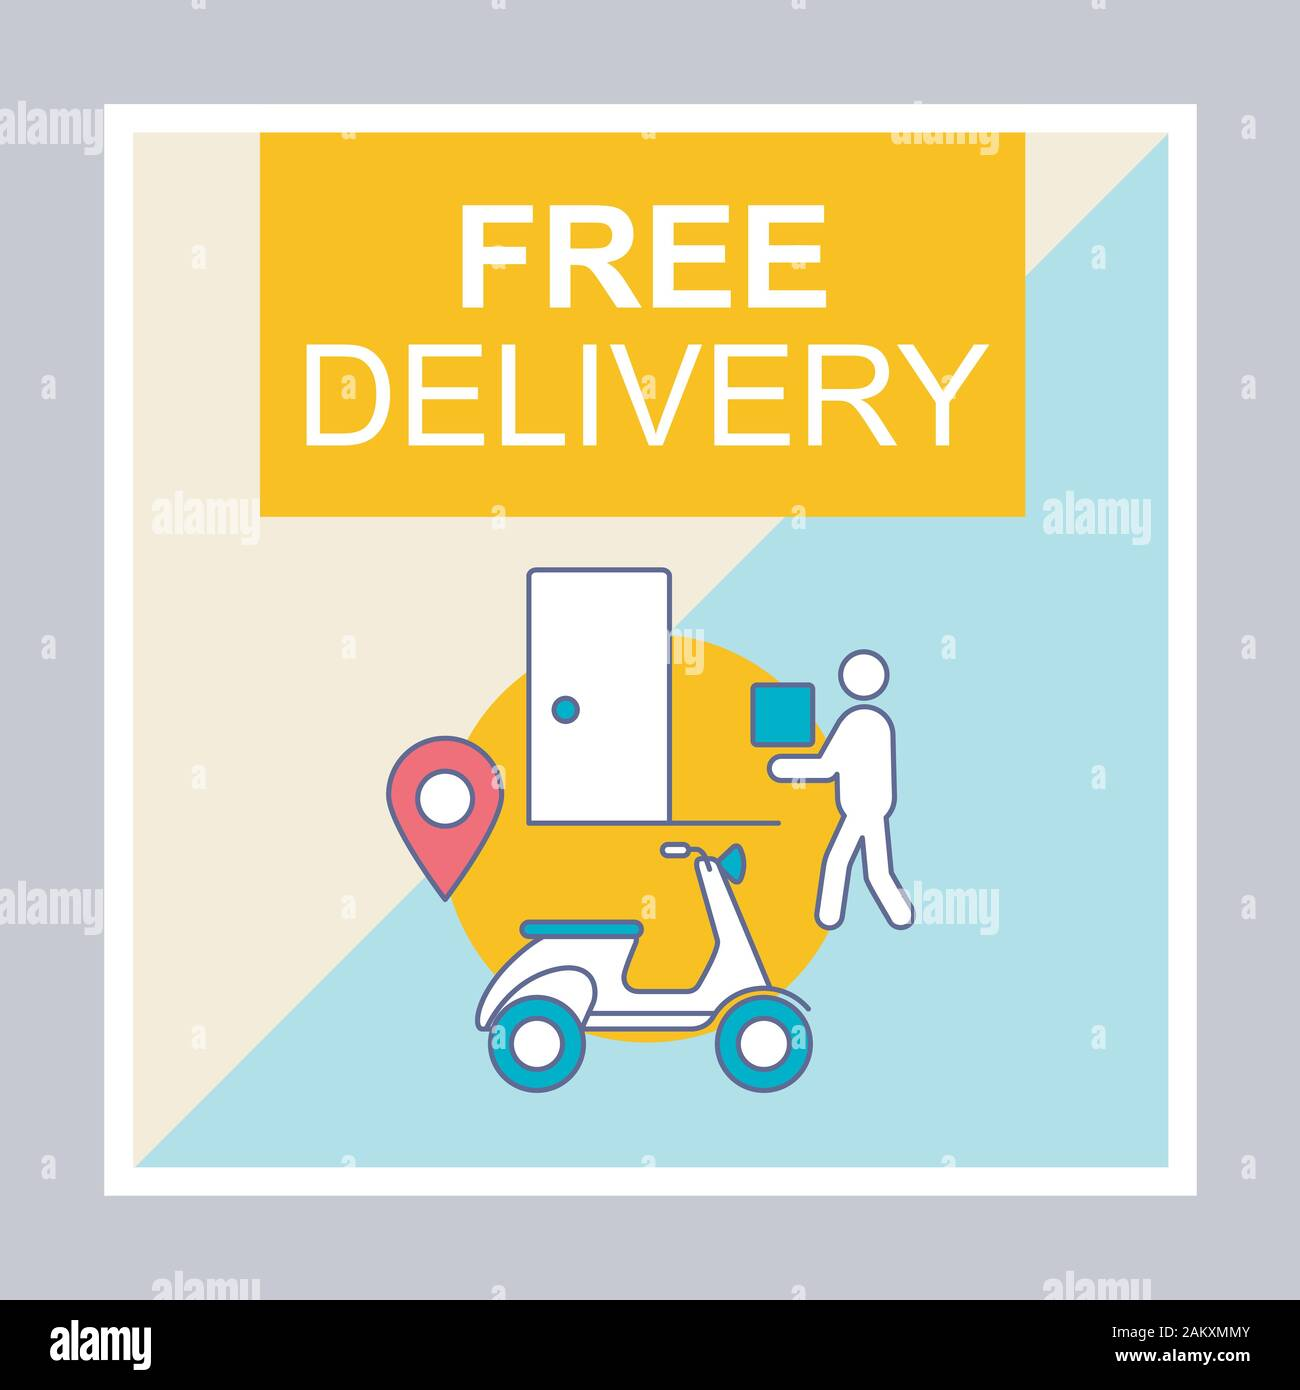 Free Delivery Social Media Posts Mockup Courier Shipping Advertising Web Banner Design Template Social Media Booster Content Layout Isolated Prom Stock Vector Image Art Alamy